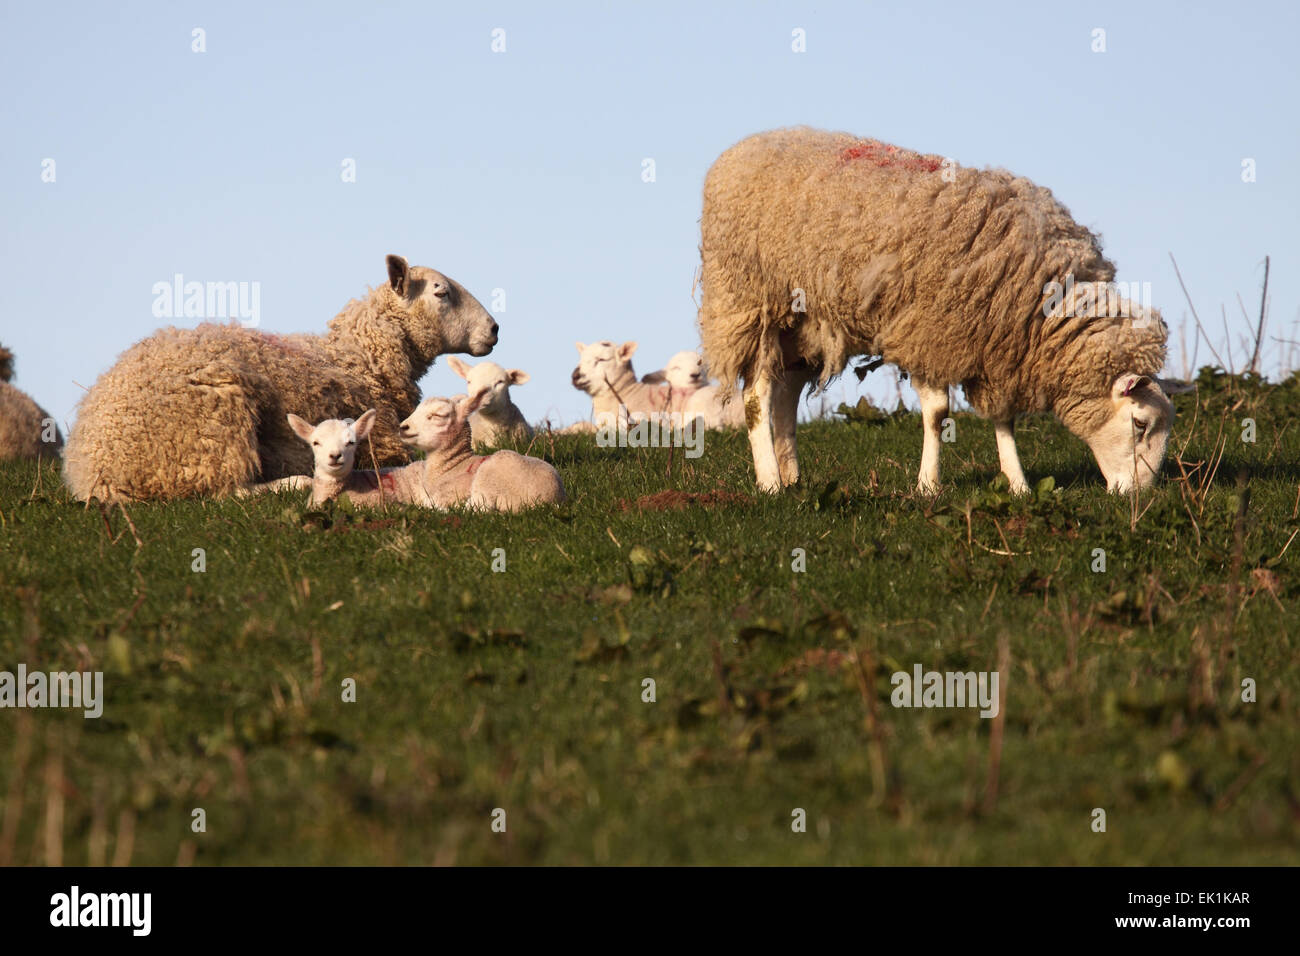 Herefordshire, UK. 5th April, 2015. UK weather: Lambs and ewes bathe in the early morning Easter sunshine in the - Stock Image